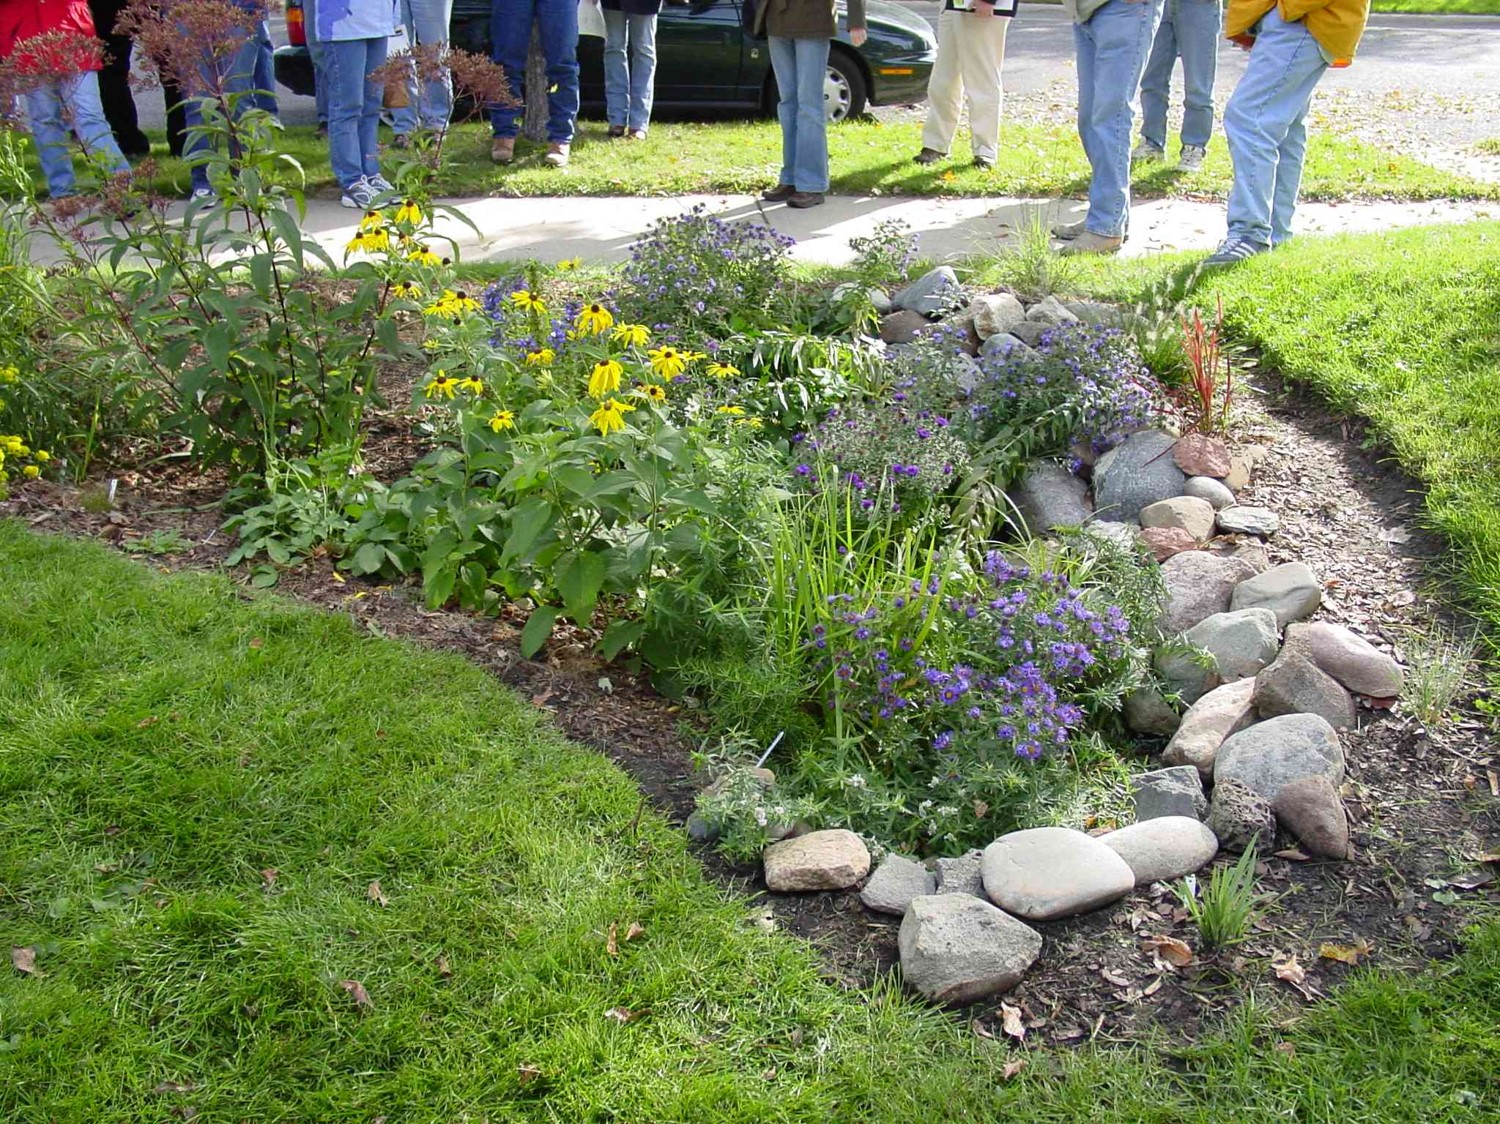 Superb Rain Gardens Can Make A Beautiful Addition To A Home Landscape.